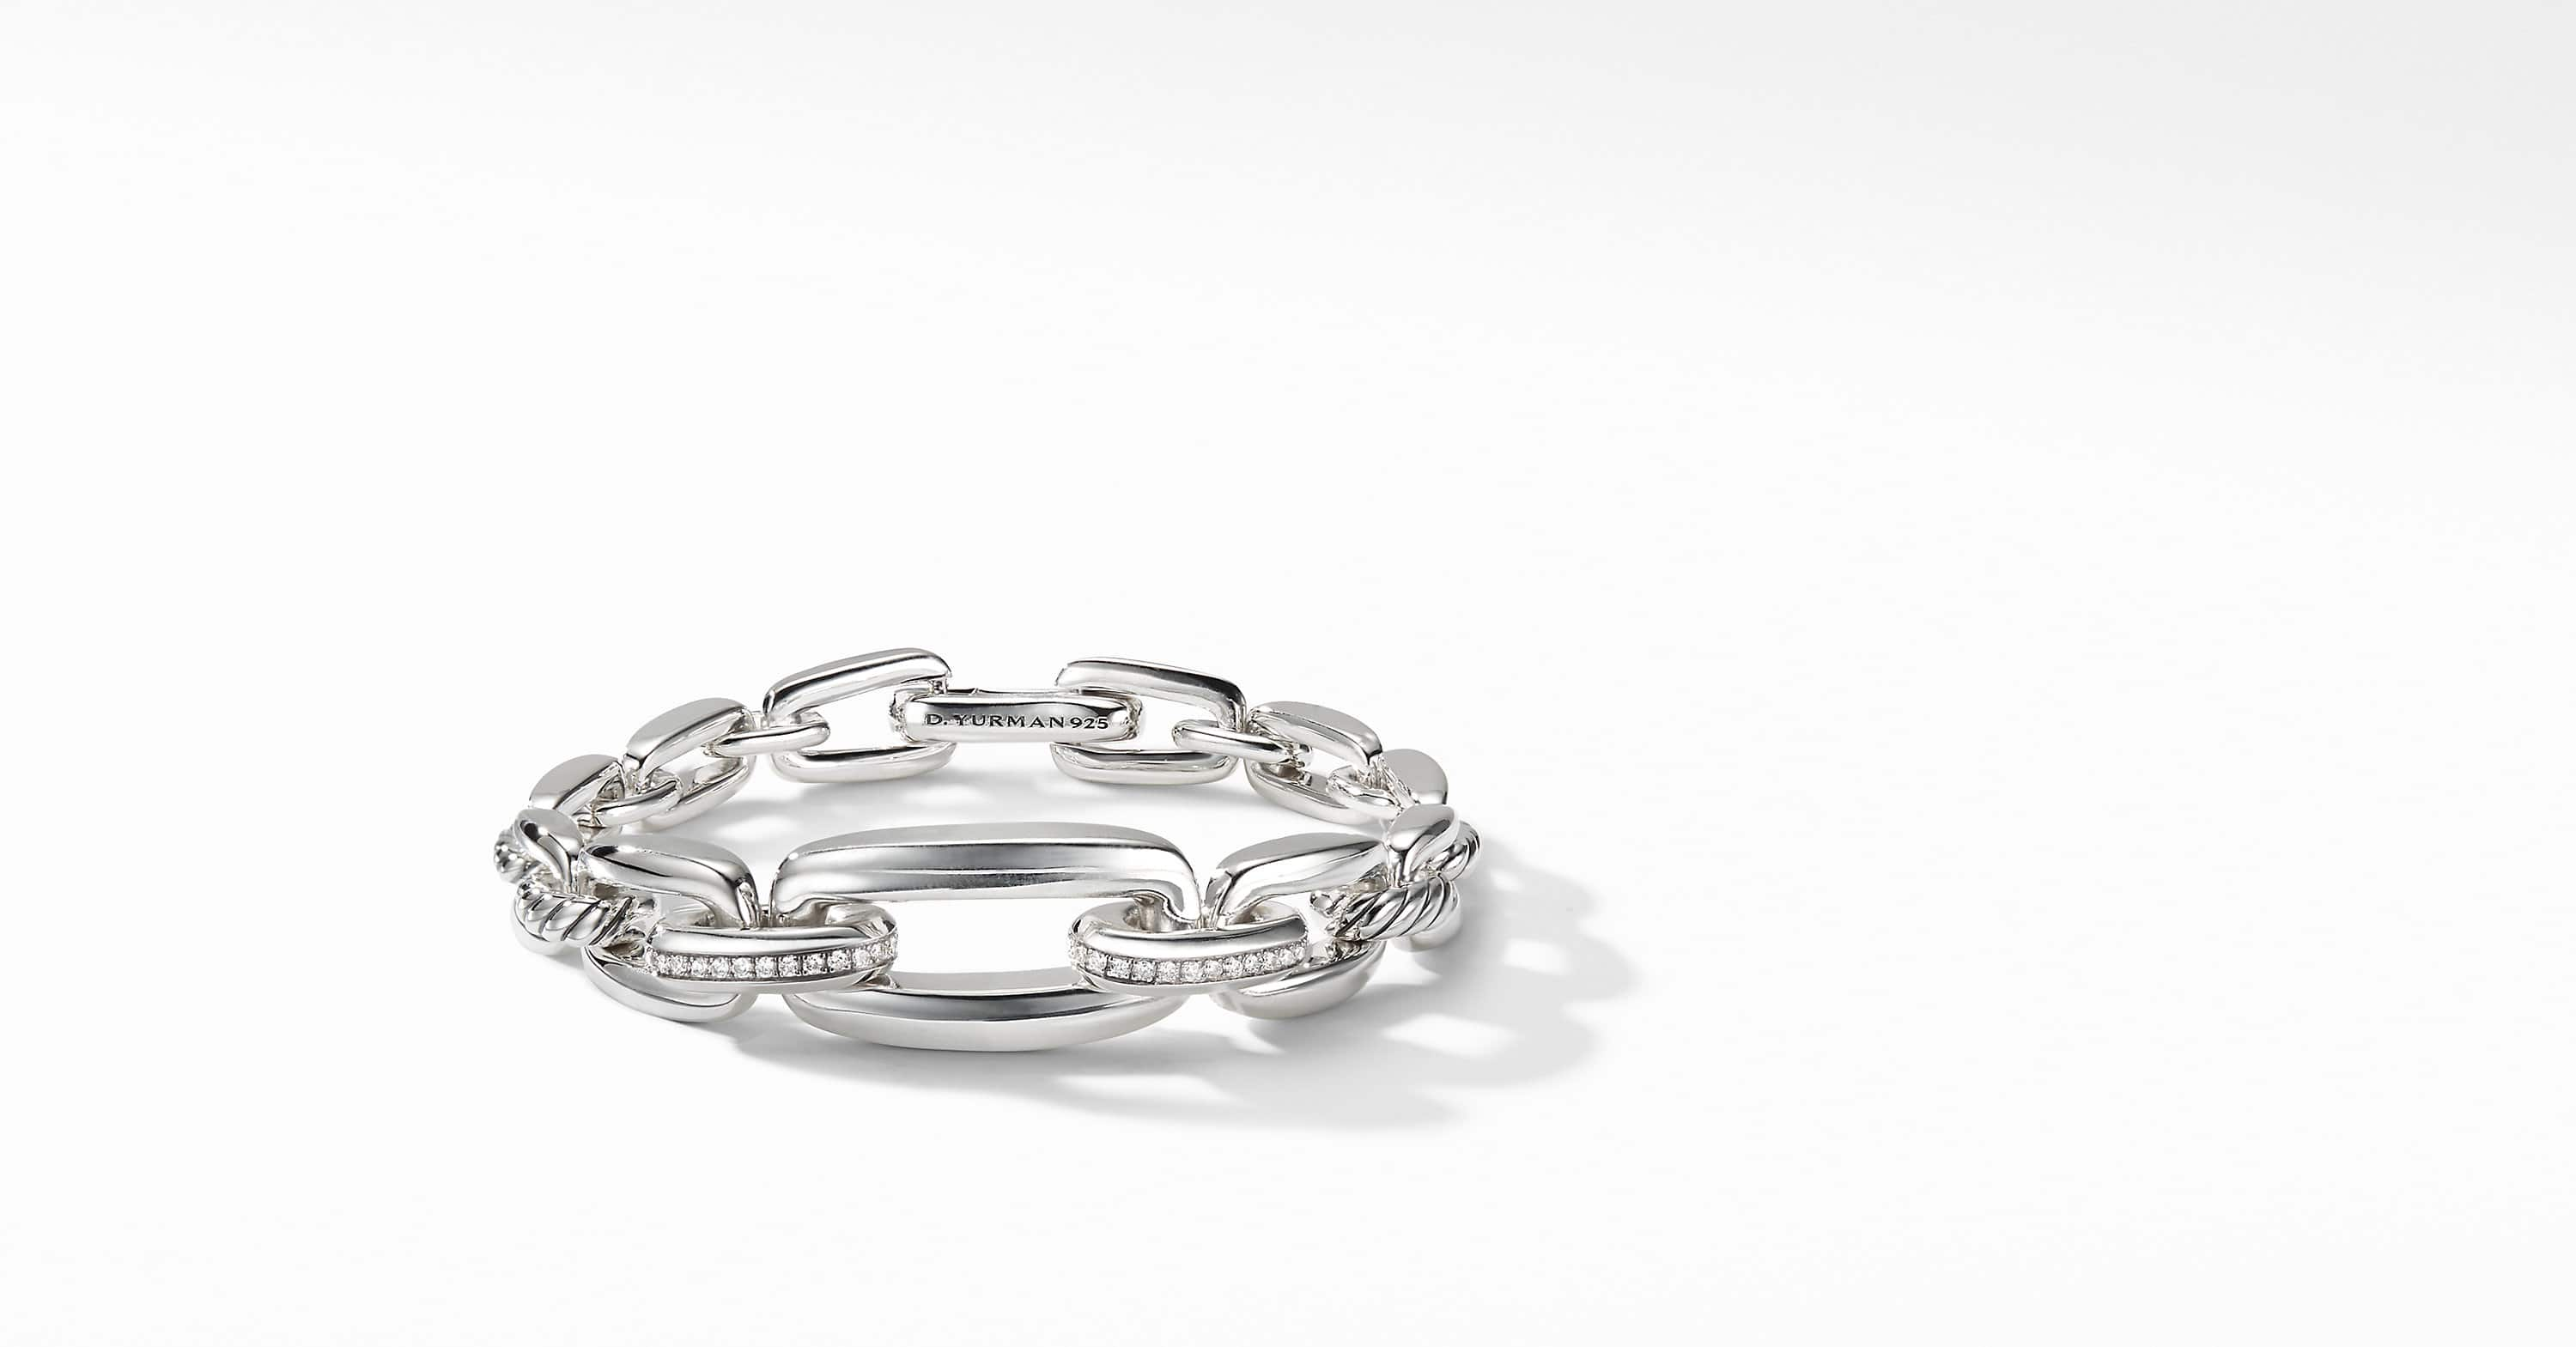 Wellesley Link Chain Bracelet with Diamonds